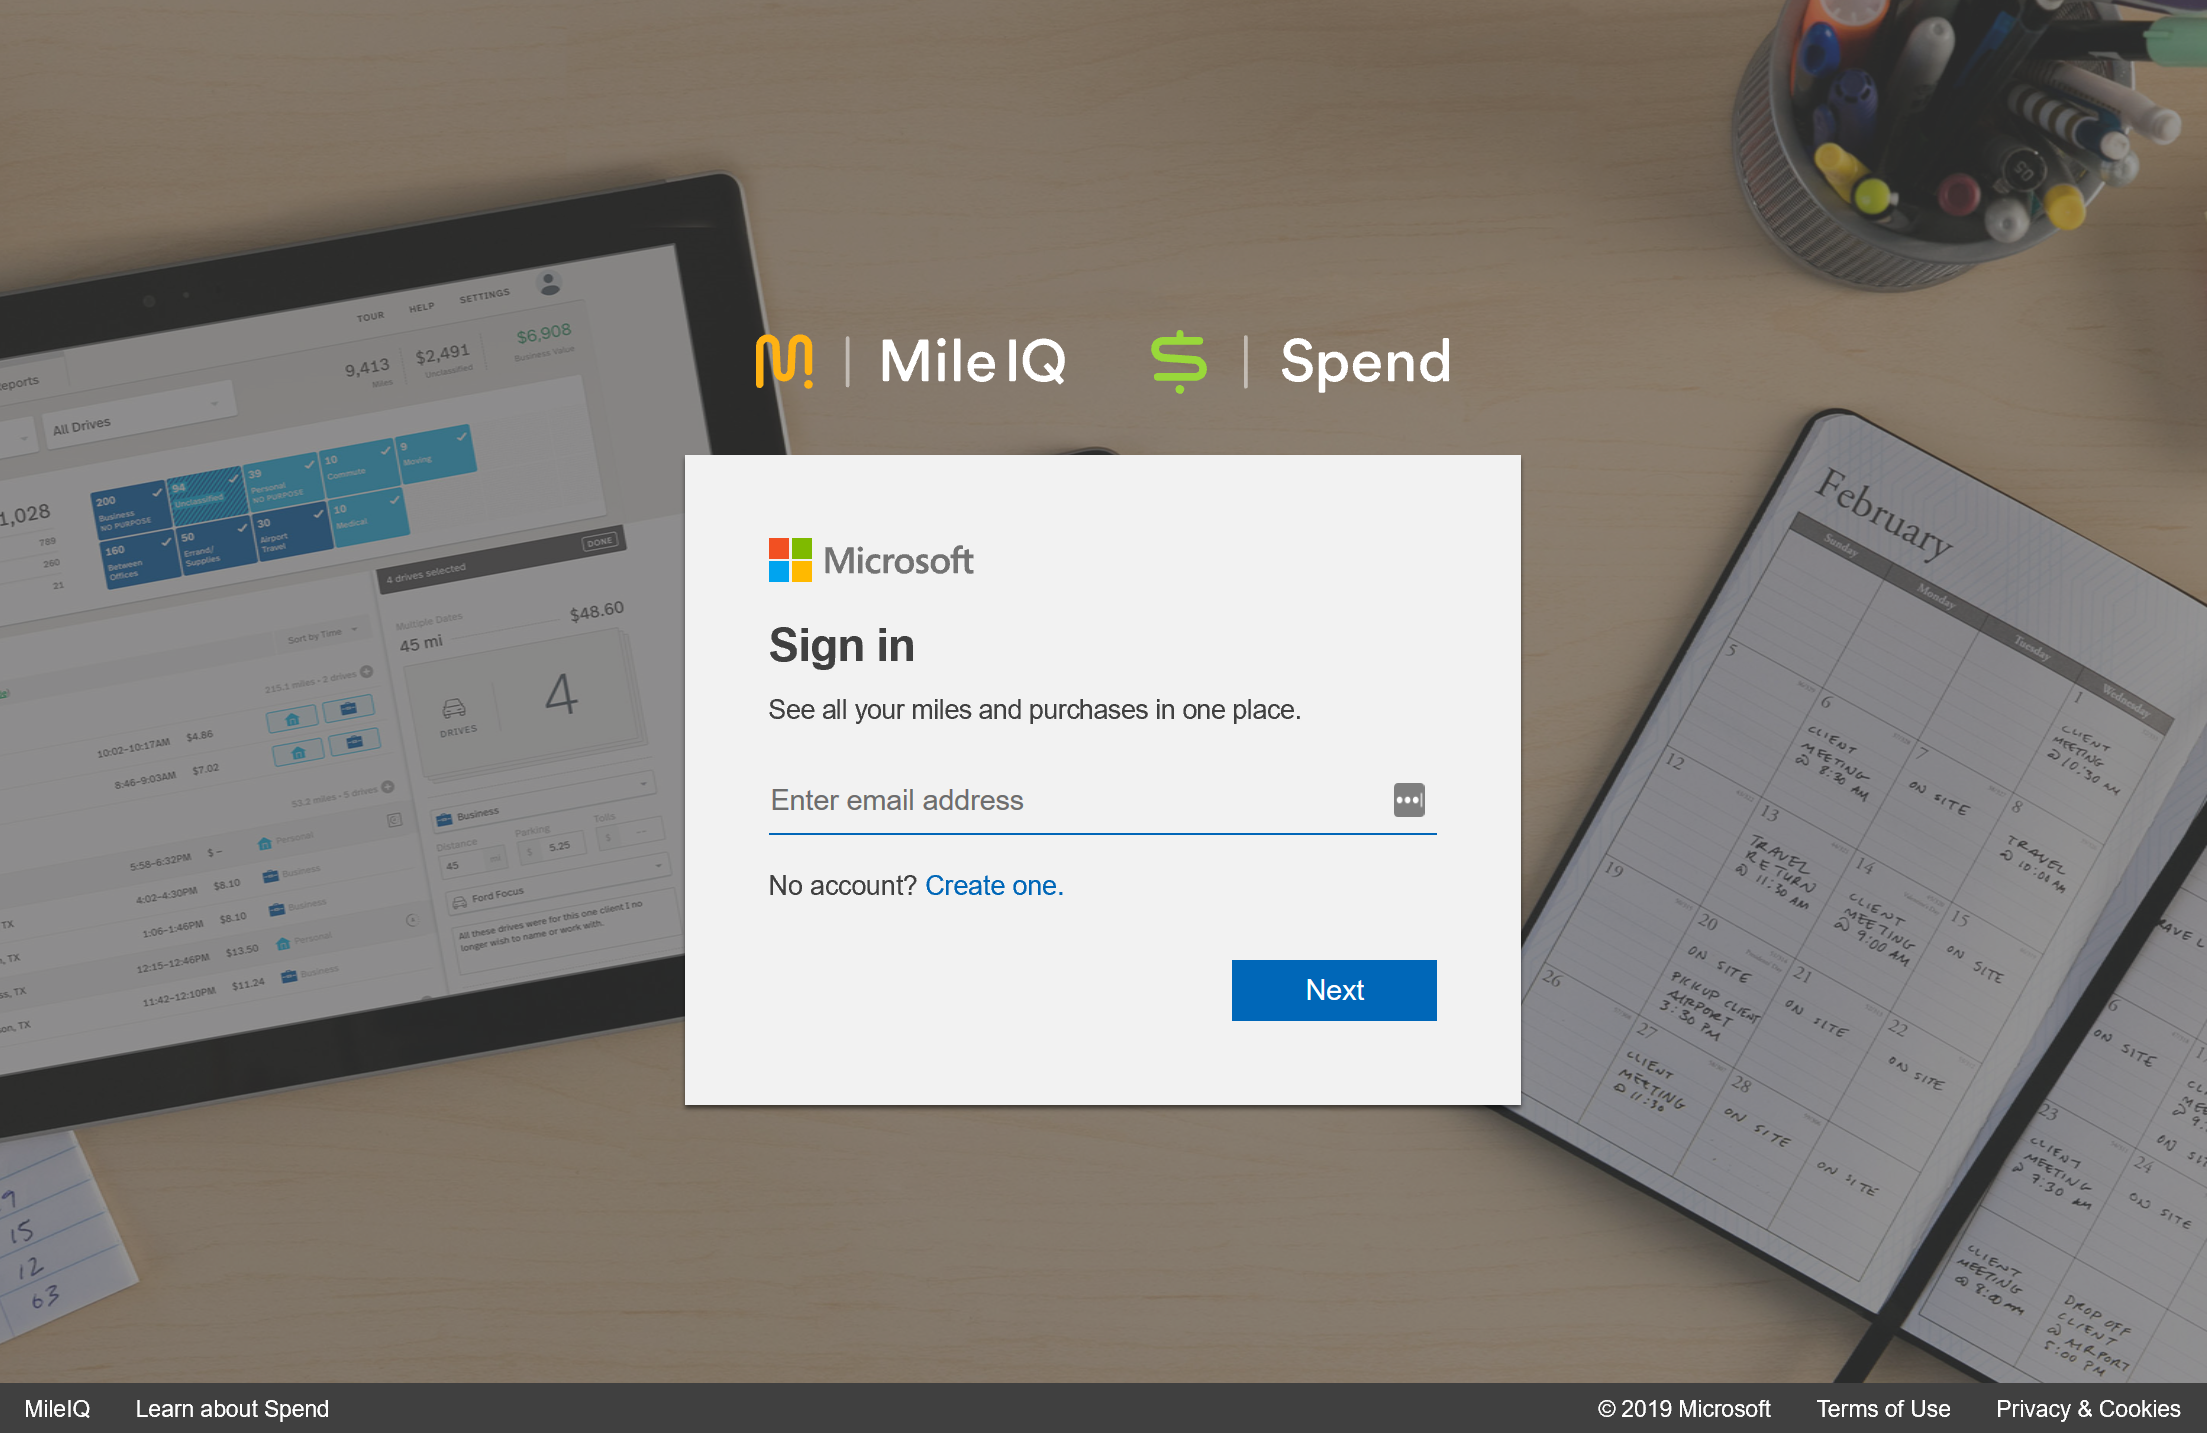 This screenshot shows the web dashboard login page